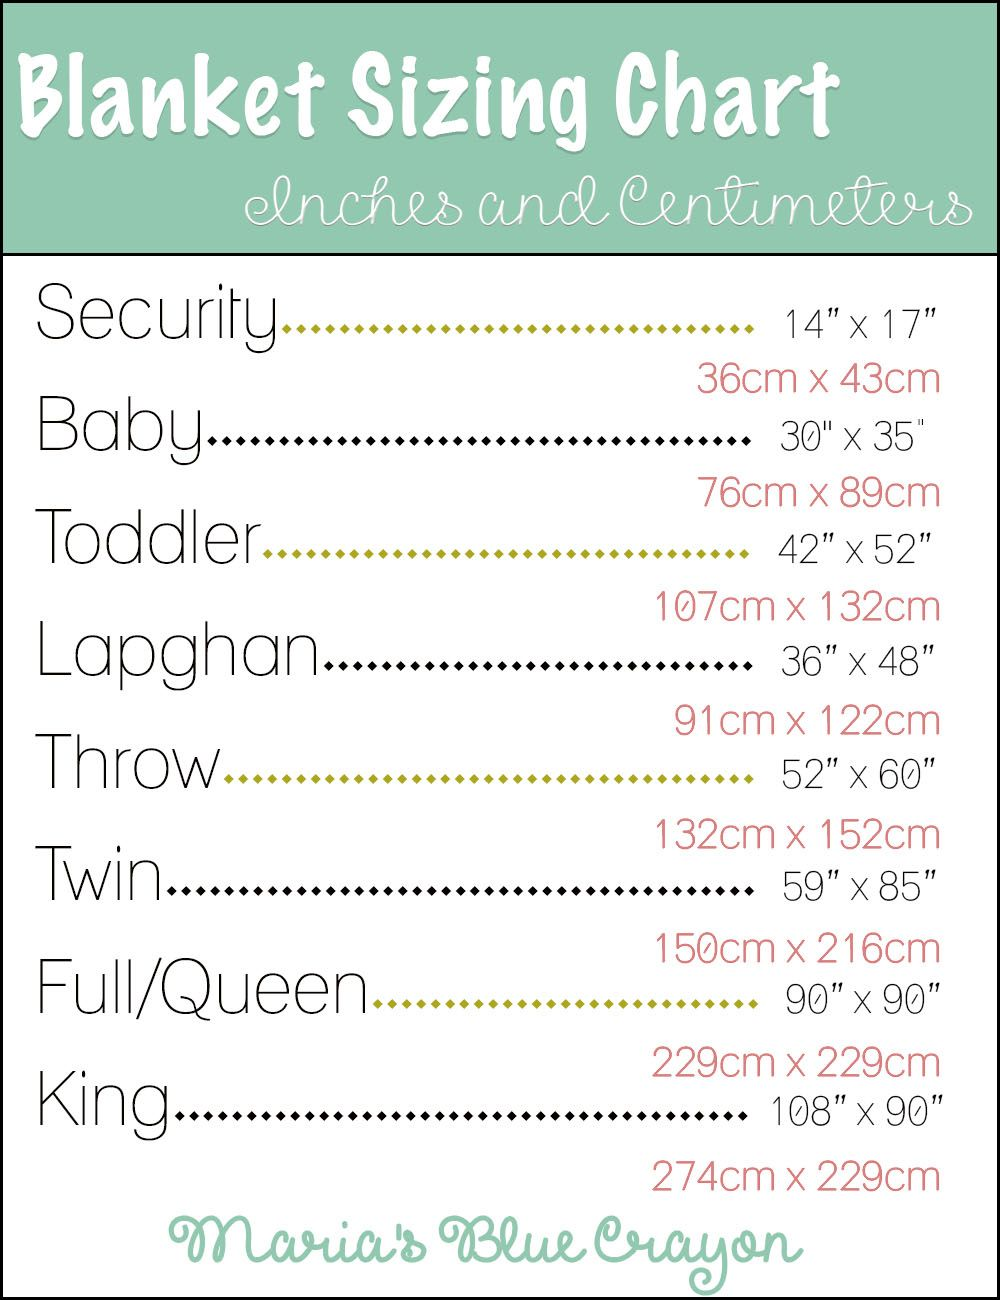 blanket sizing in inches and centimeters chart to help guide you in sizing your blanket knit crochet etc [ 1000 x 1300 Pixel ]